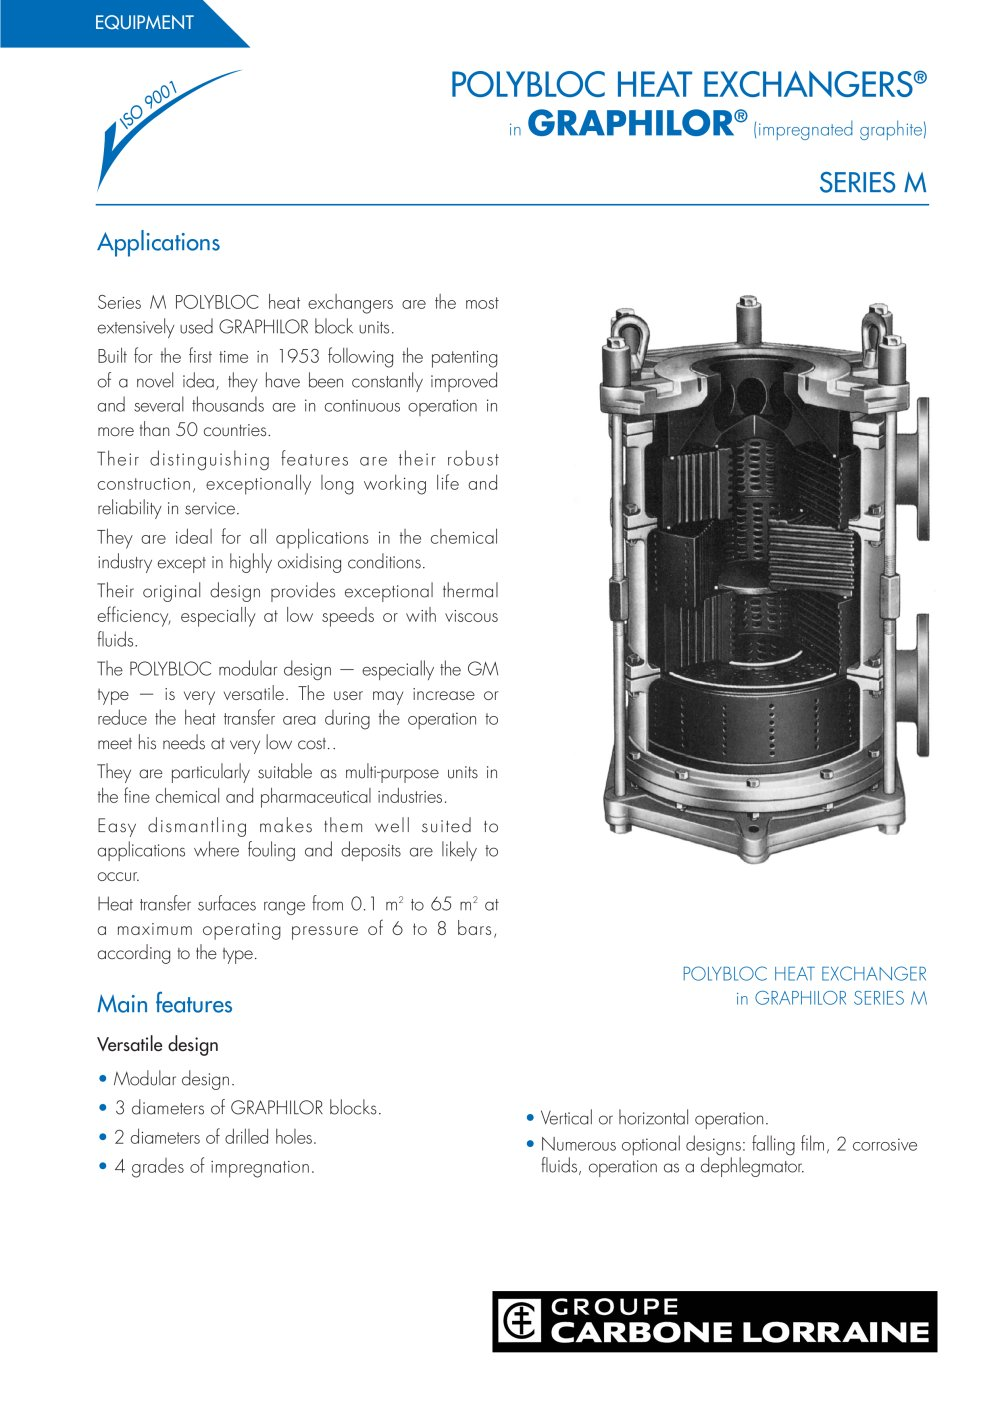 Polybloc M Mersen Equipements Industriels Et Anticorrosion Piping Layout Heat Exchanger 1 12 Pages